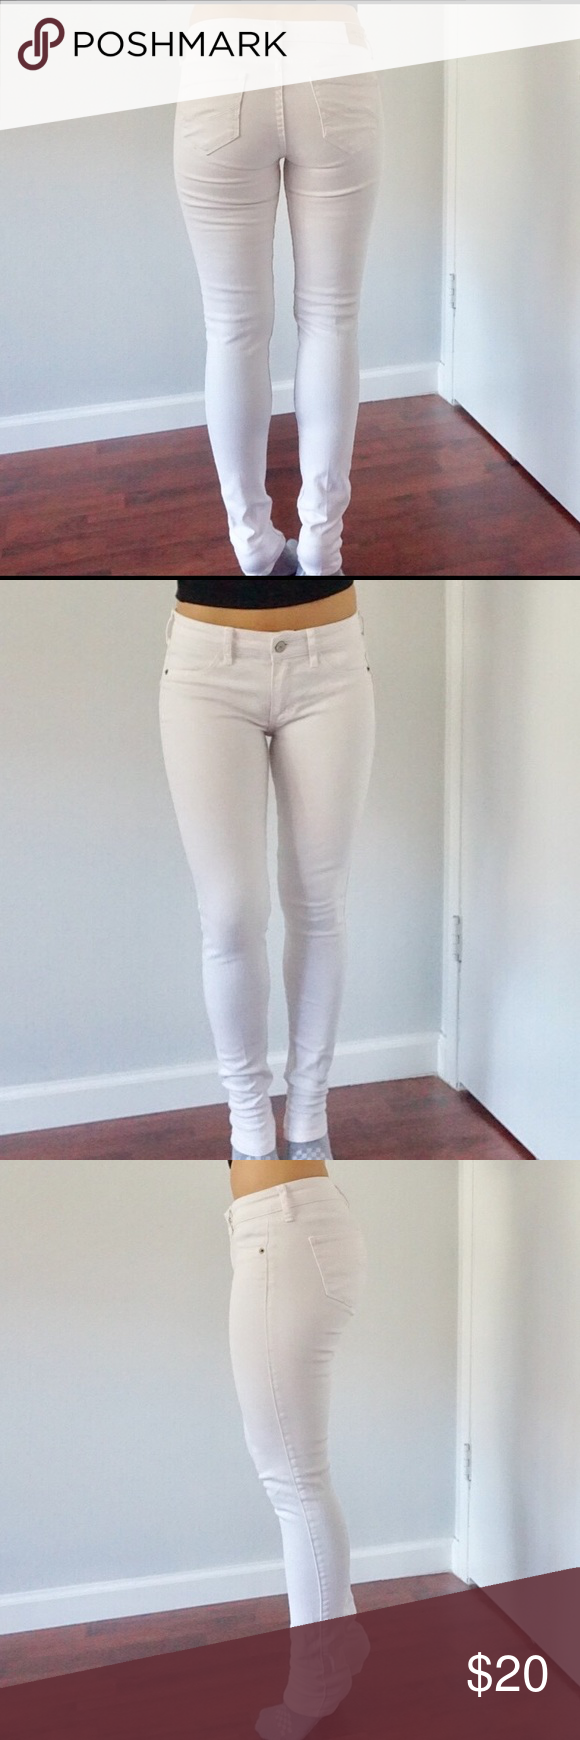 Abercrombie white skinny jeans Note: there is a stain on the pant leg (see image) haven't tried bleaching it or fixing it. W 25 L 29 Abercrombie & Fitch Jeans Skinny